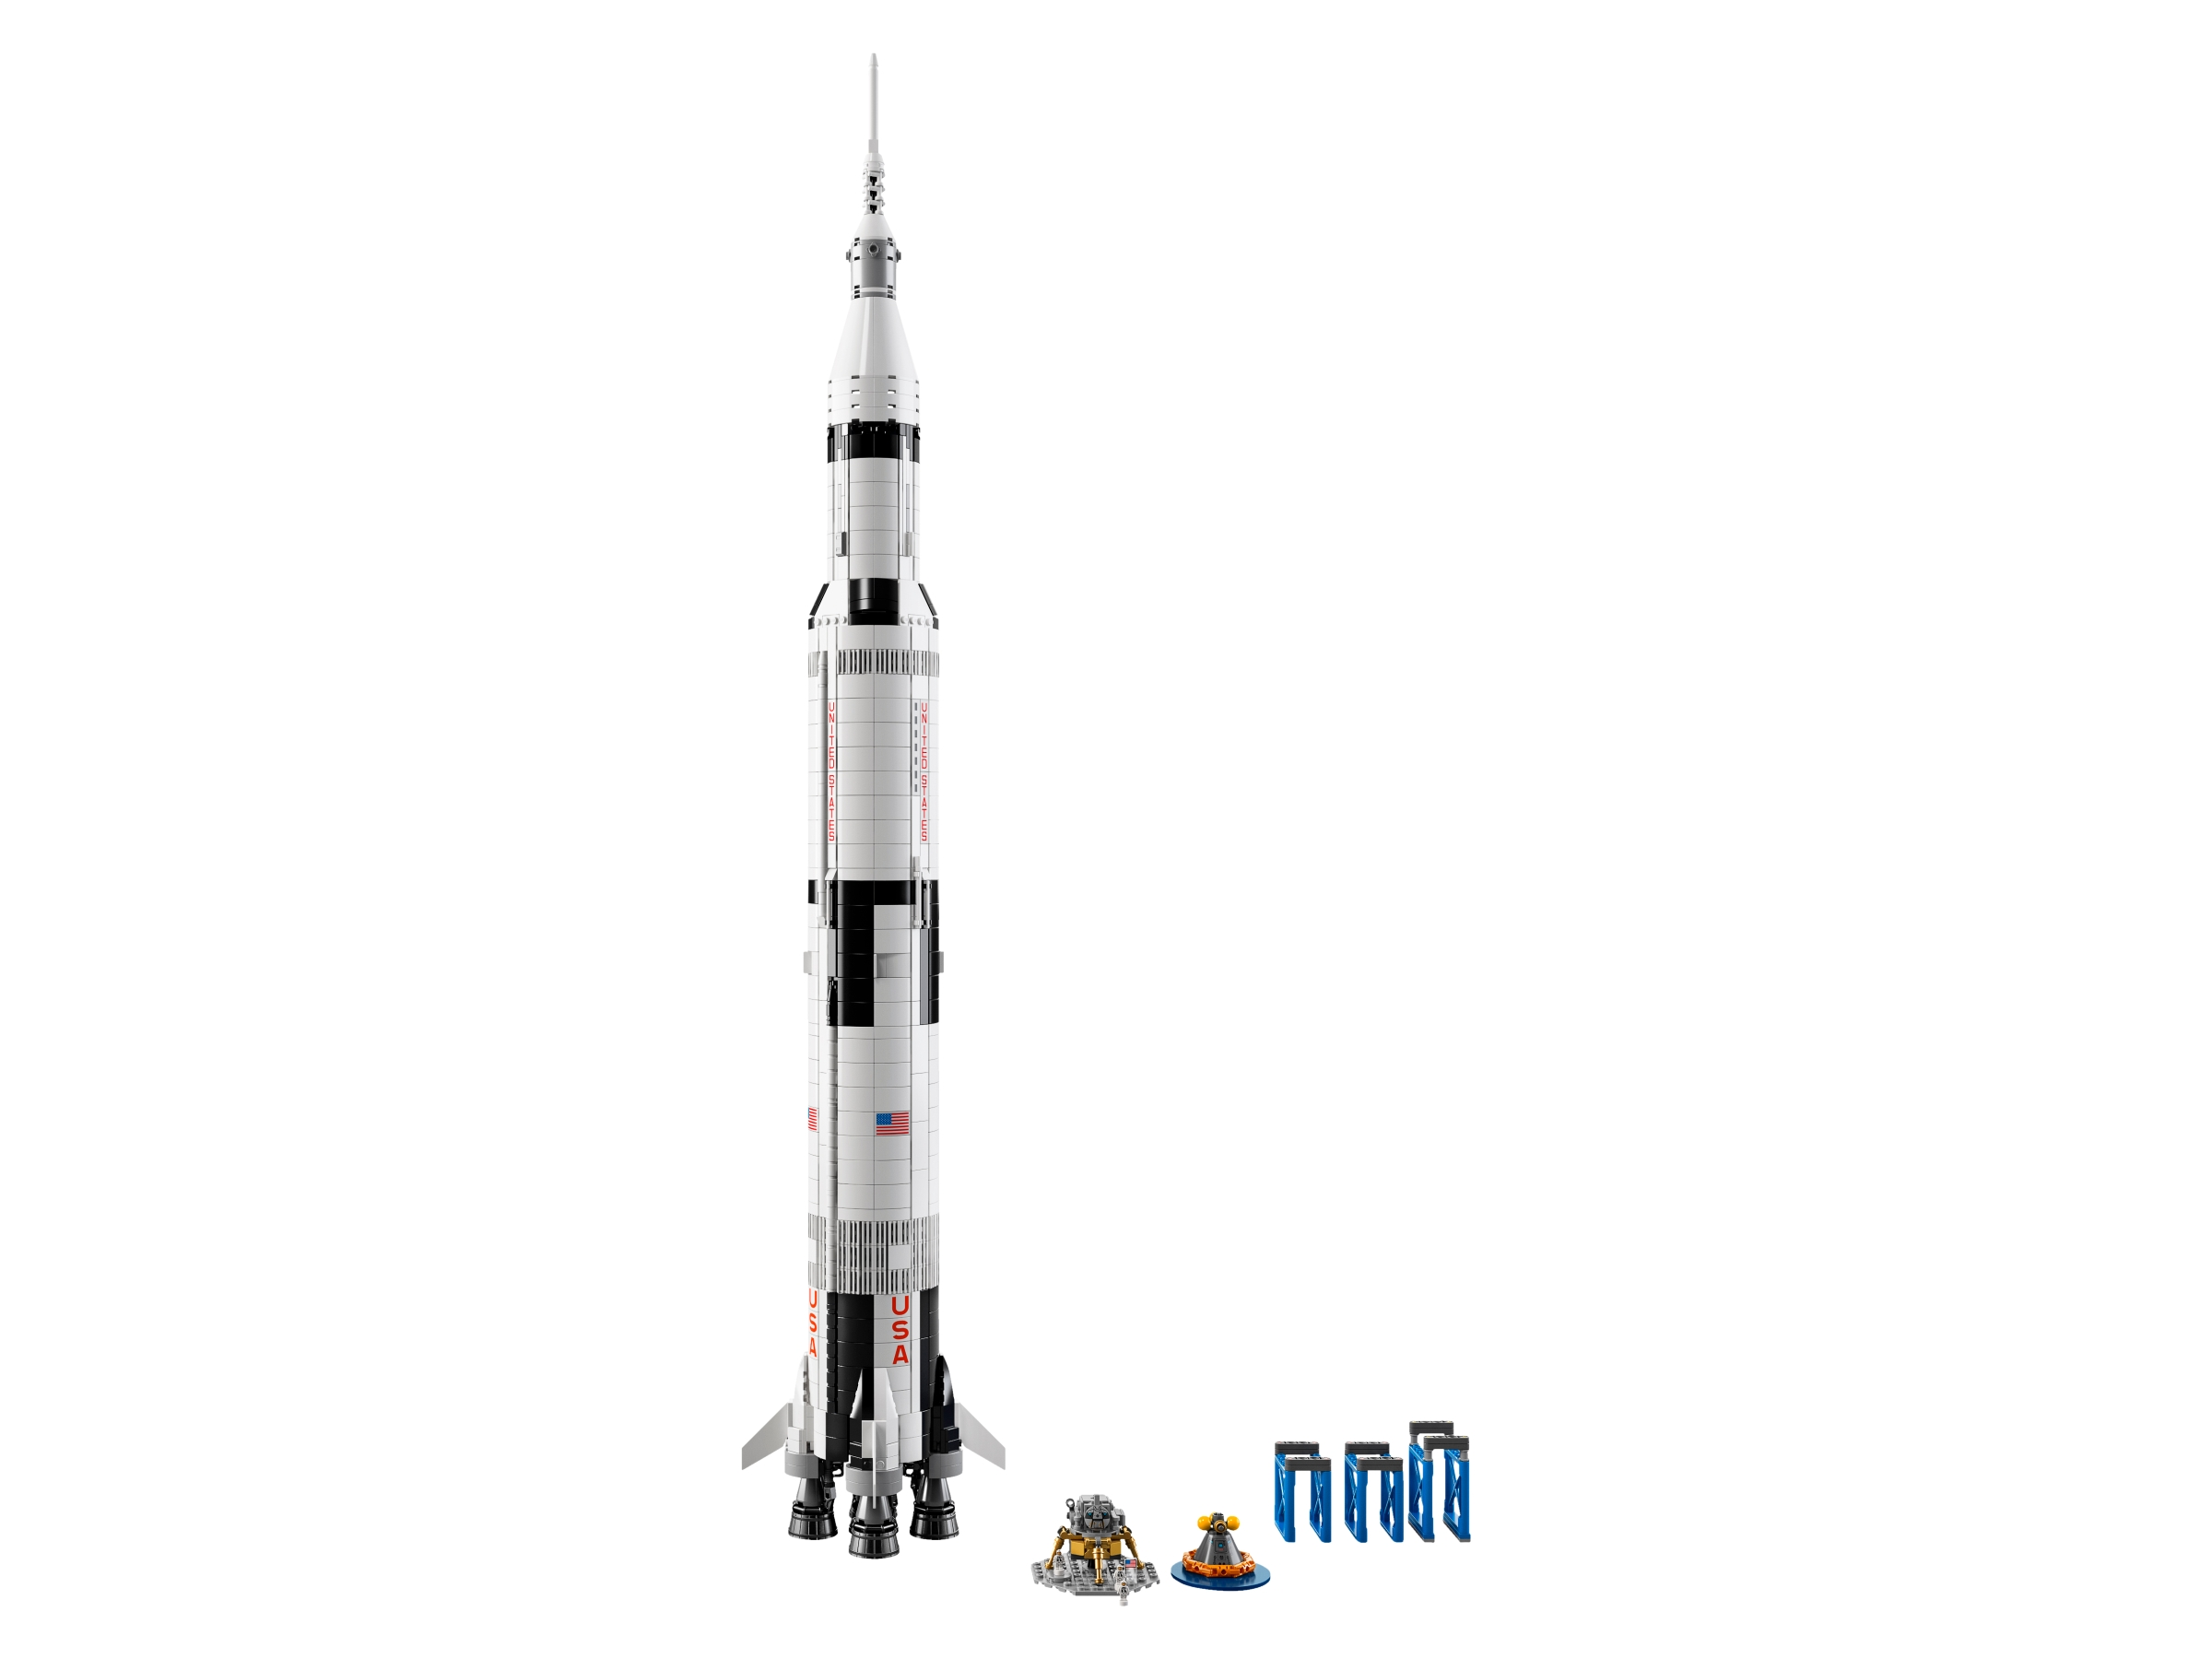 Lego Nasa Apollo Saturn V 92176 Ideas Buy Online At The Official Lego Shop Us